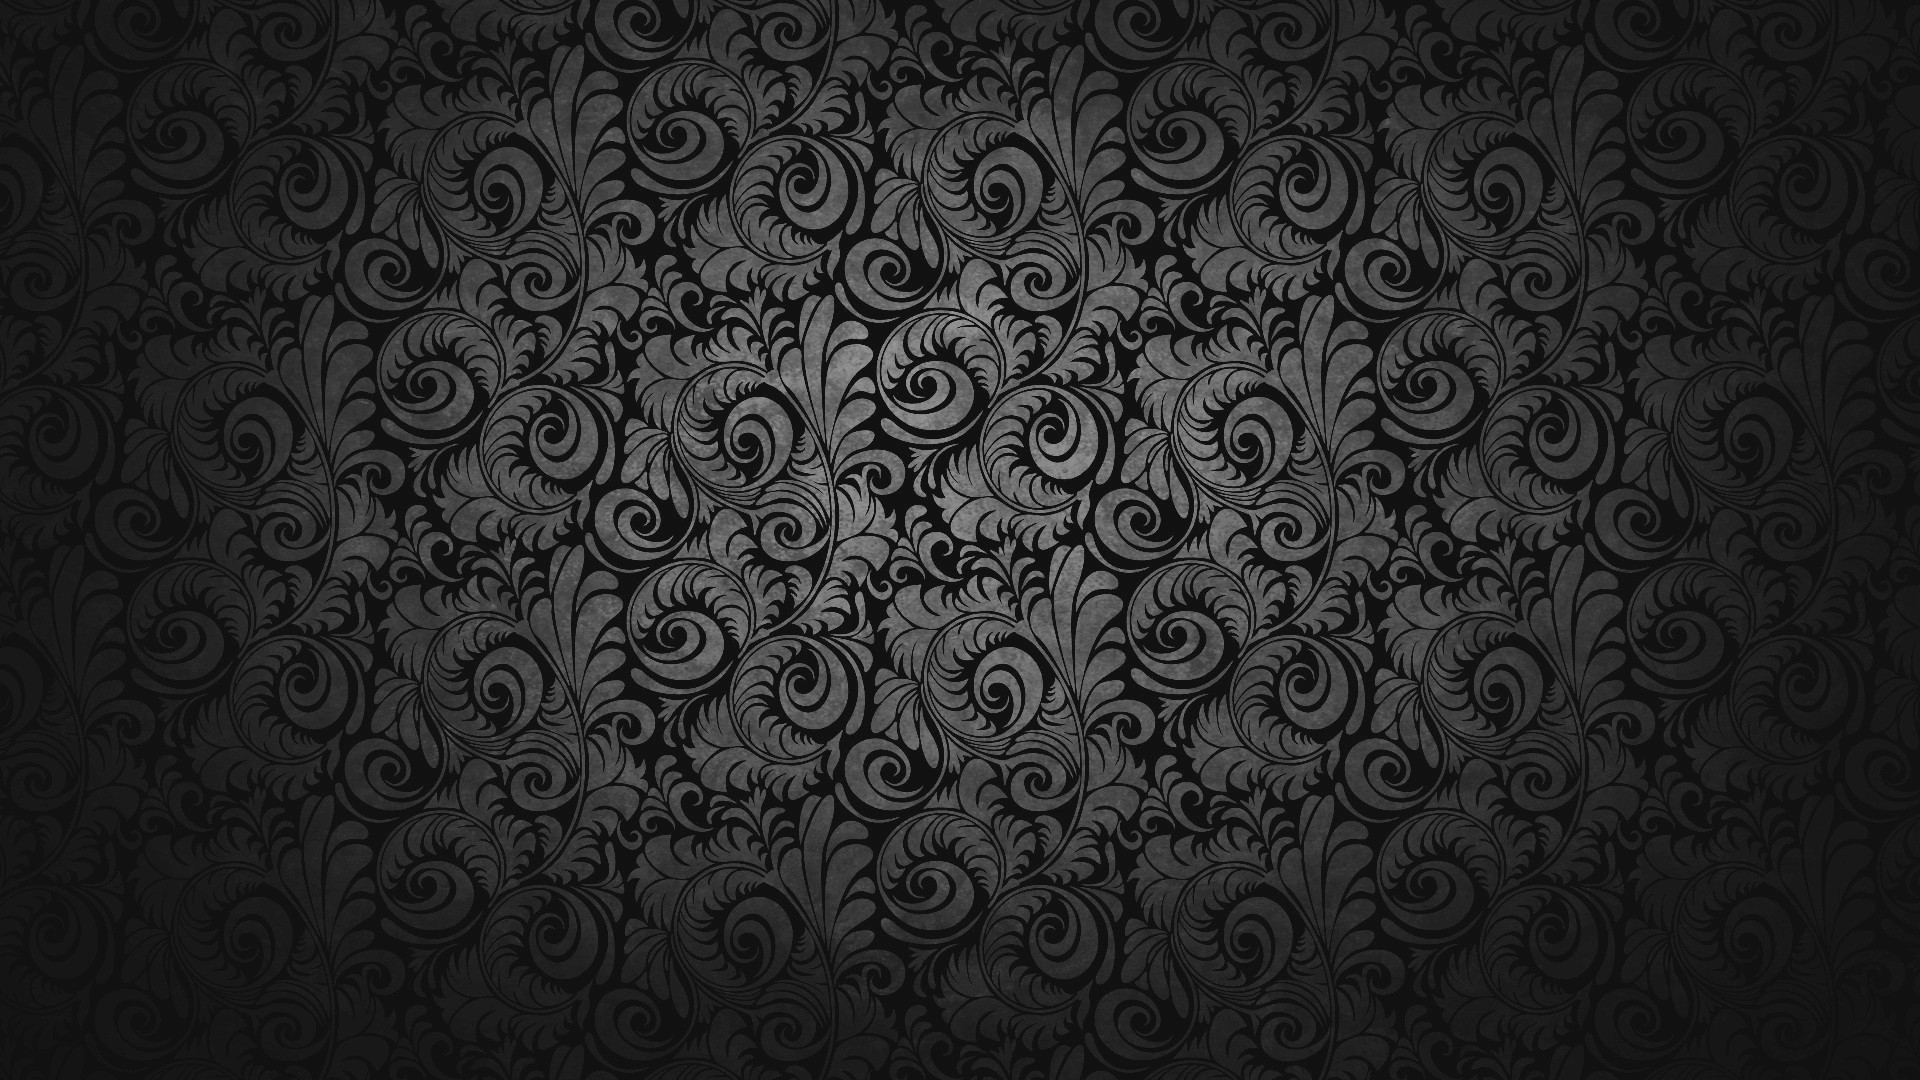 1920x1080 abstract black hd wallpaper